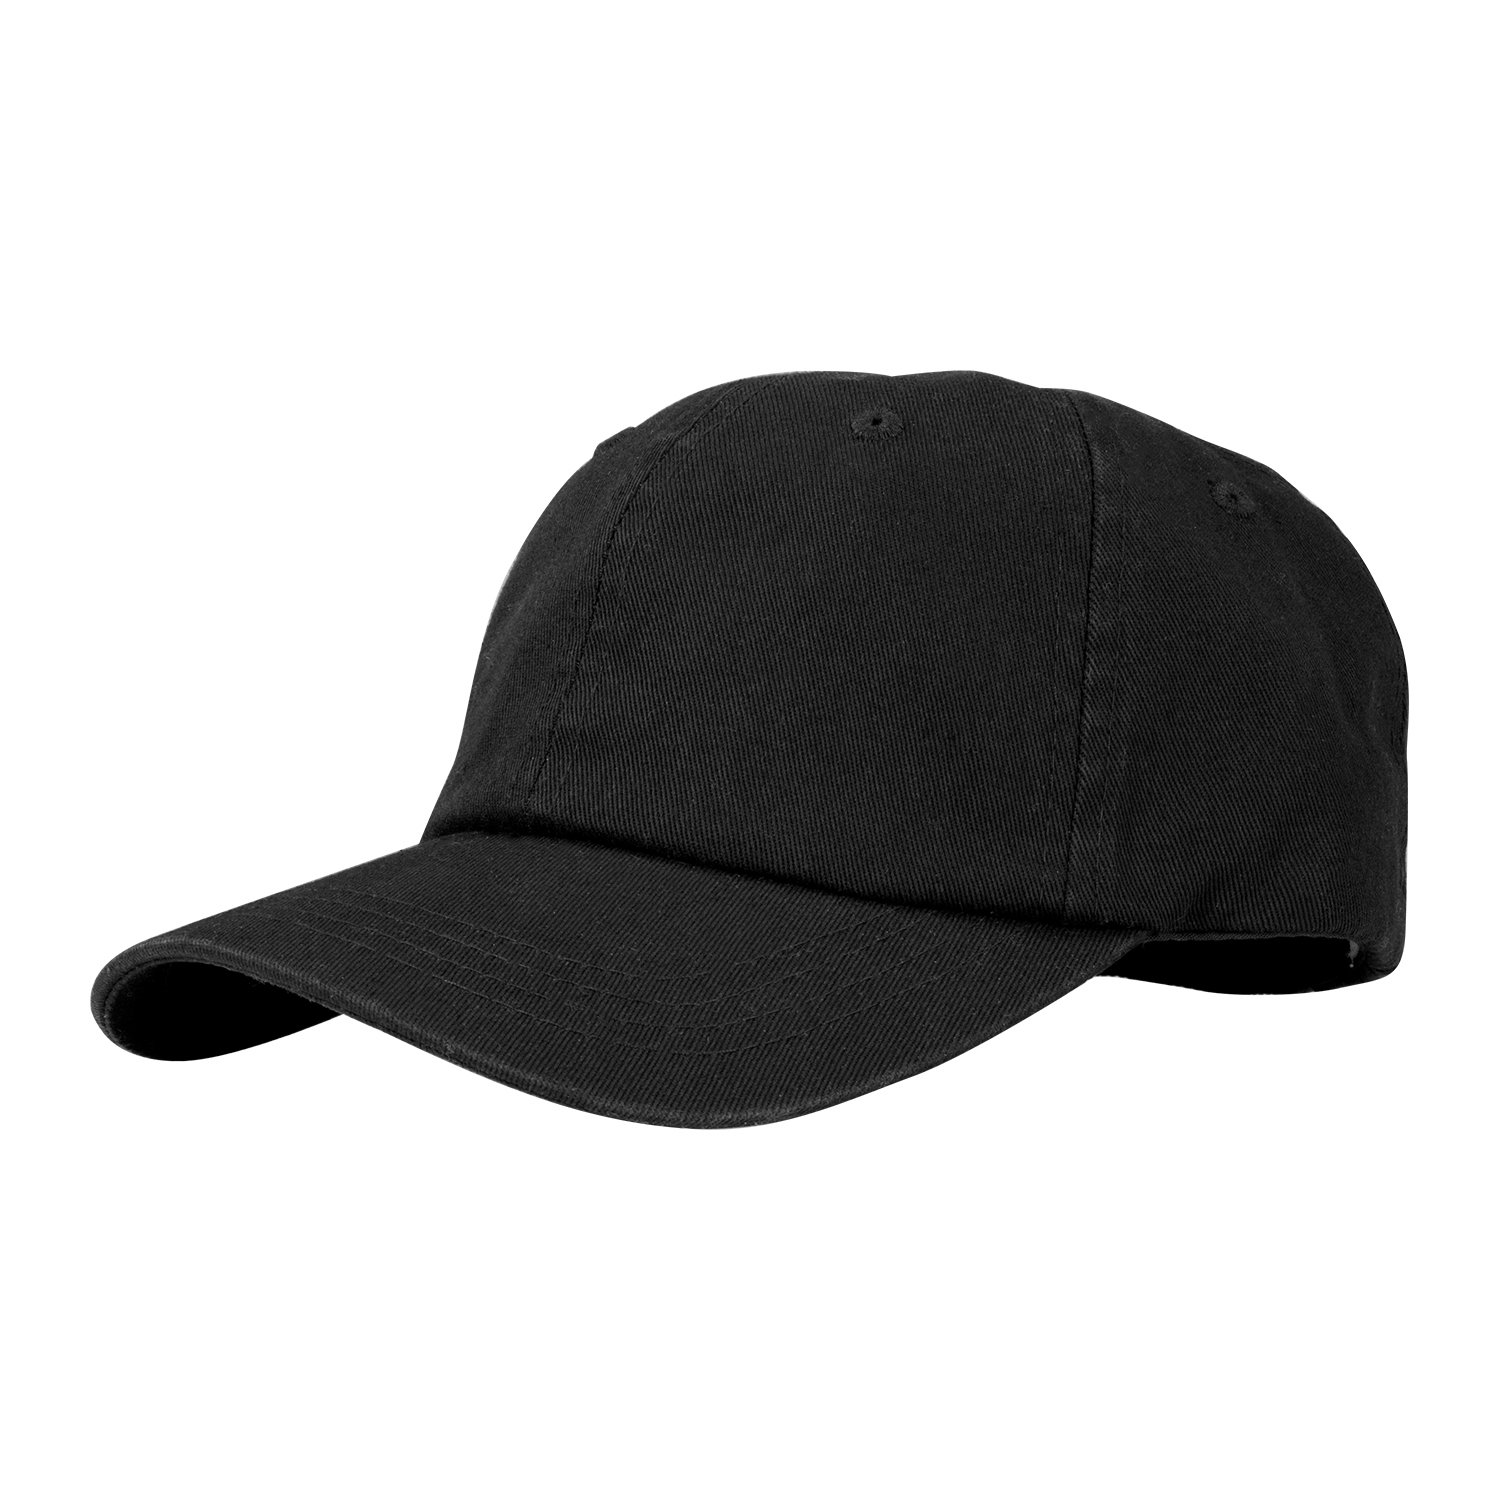 c31931bdd44 PT FASHIONS 100% Cotton Dad Hat Unisex Washed Twill Cotton Baseball Cap Low  Profile Polo Style Unconstructed-01black at Amazon Men s Clothing store